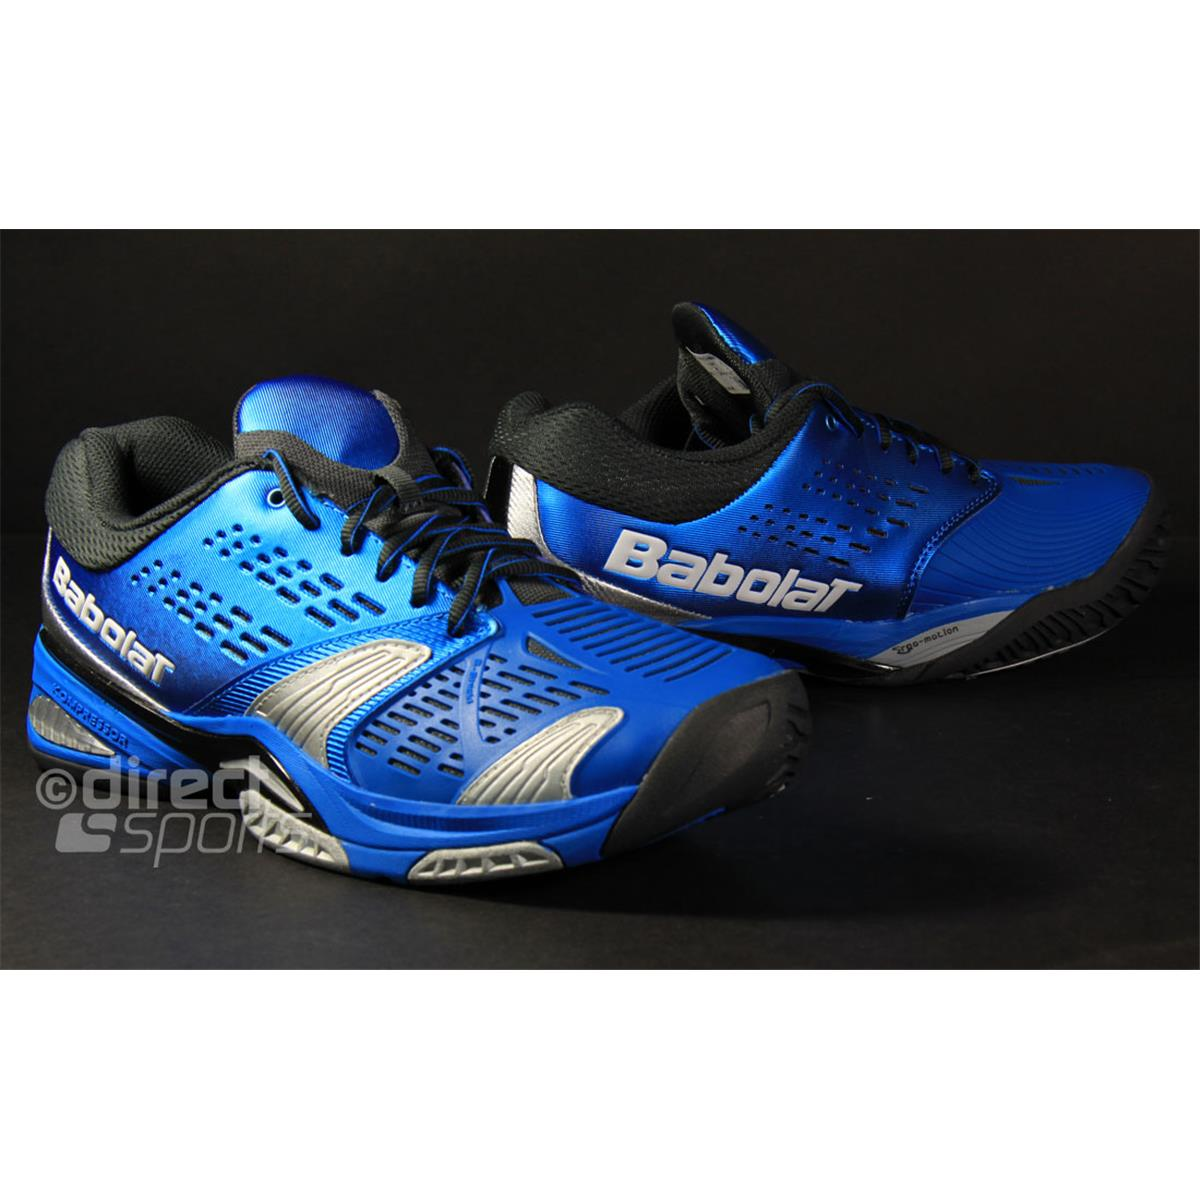 Babolat Tennis Shoes Size